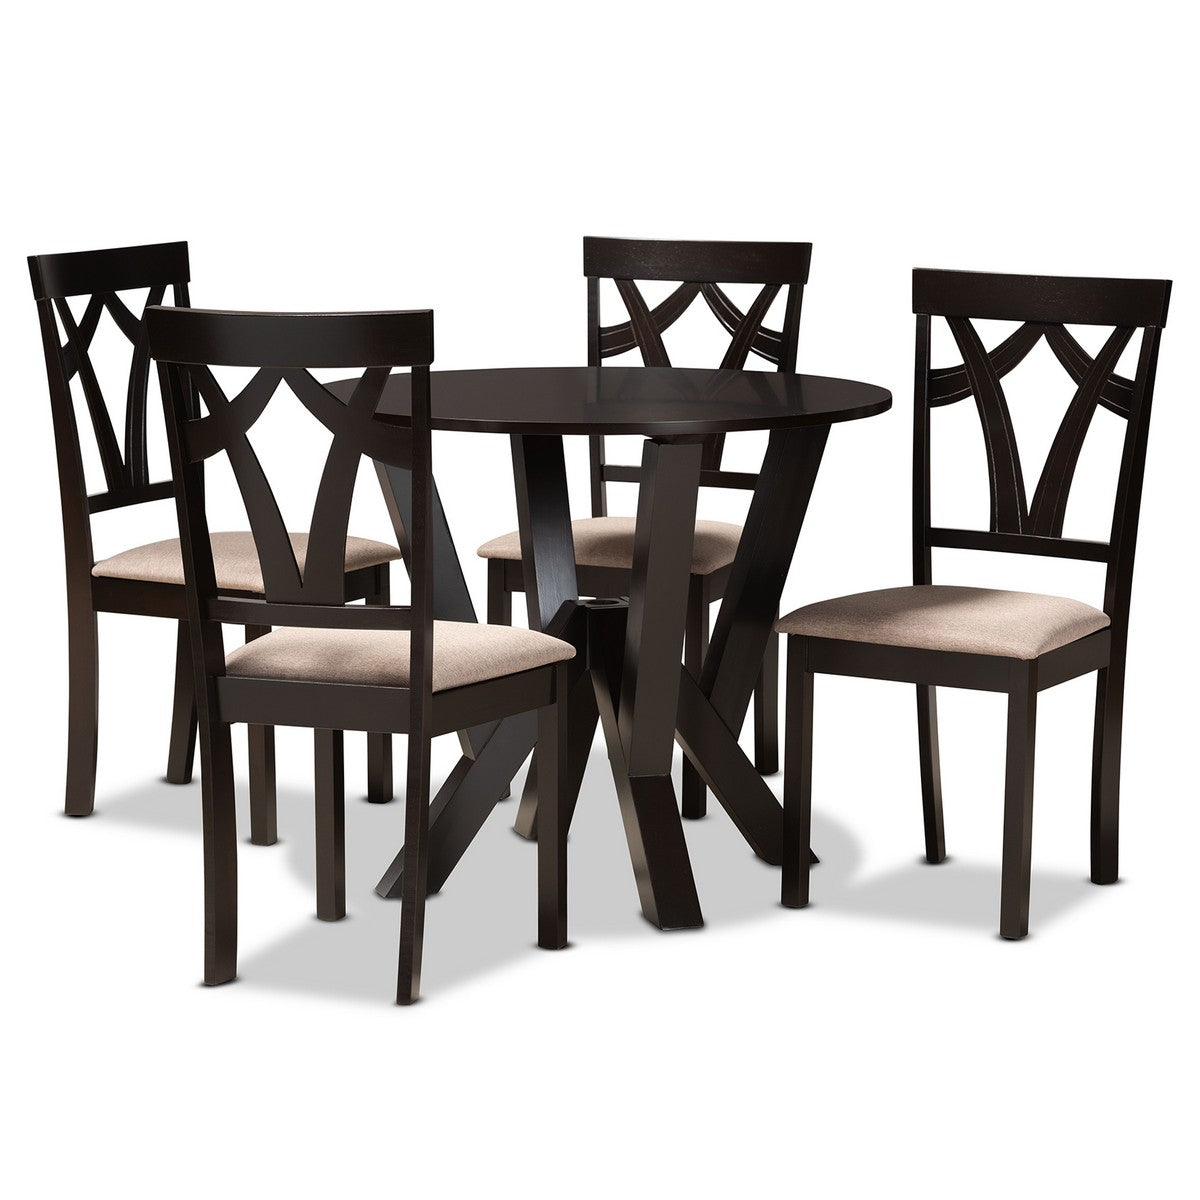 Baxton Studio Reagan Modern and Contemporary Sand Fabric Upholstered and Dark Brown Finished Wood 5-Piece Dining Set Baxton Studio-Dining Sets-Minimal And Modern - 1